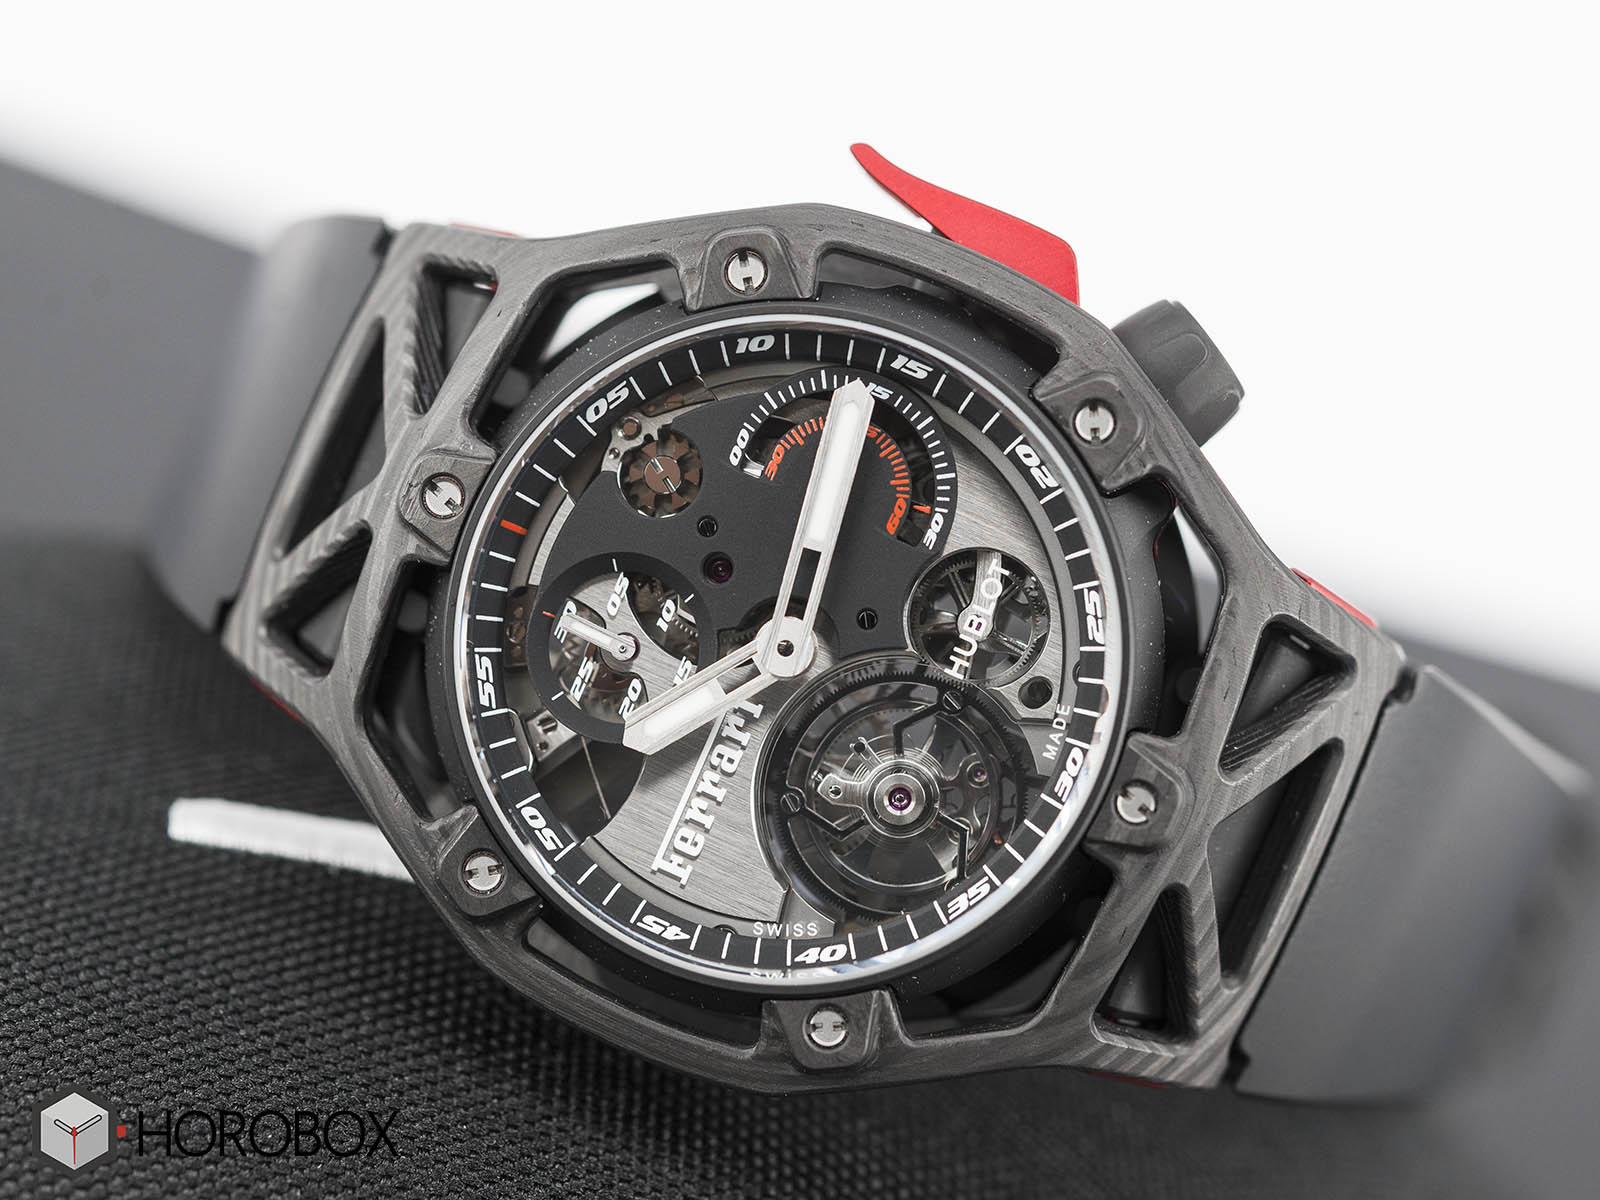 hublot-techframe-ferrari-70-years-tourbillon-chronograph-6-.jpg